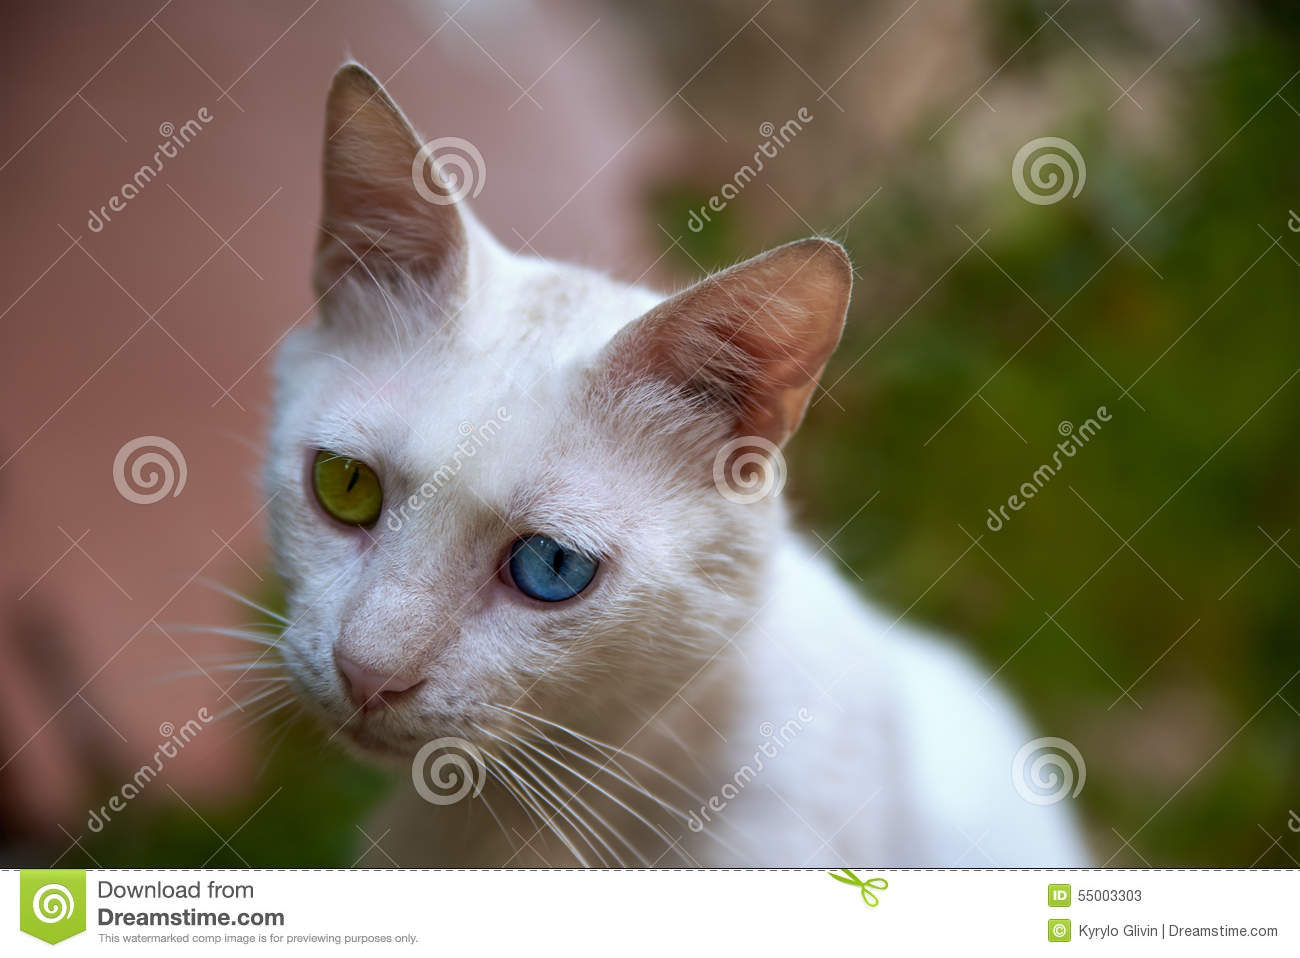 White Cat With Blue And Green Eyes Stock Image - Image ... White Kitten With Blue And Green Eyes